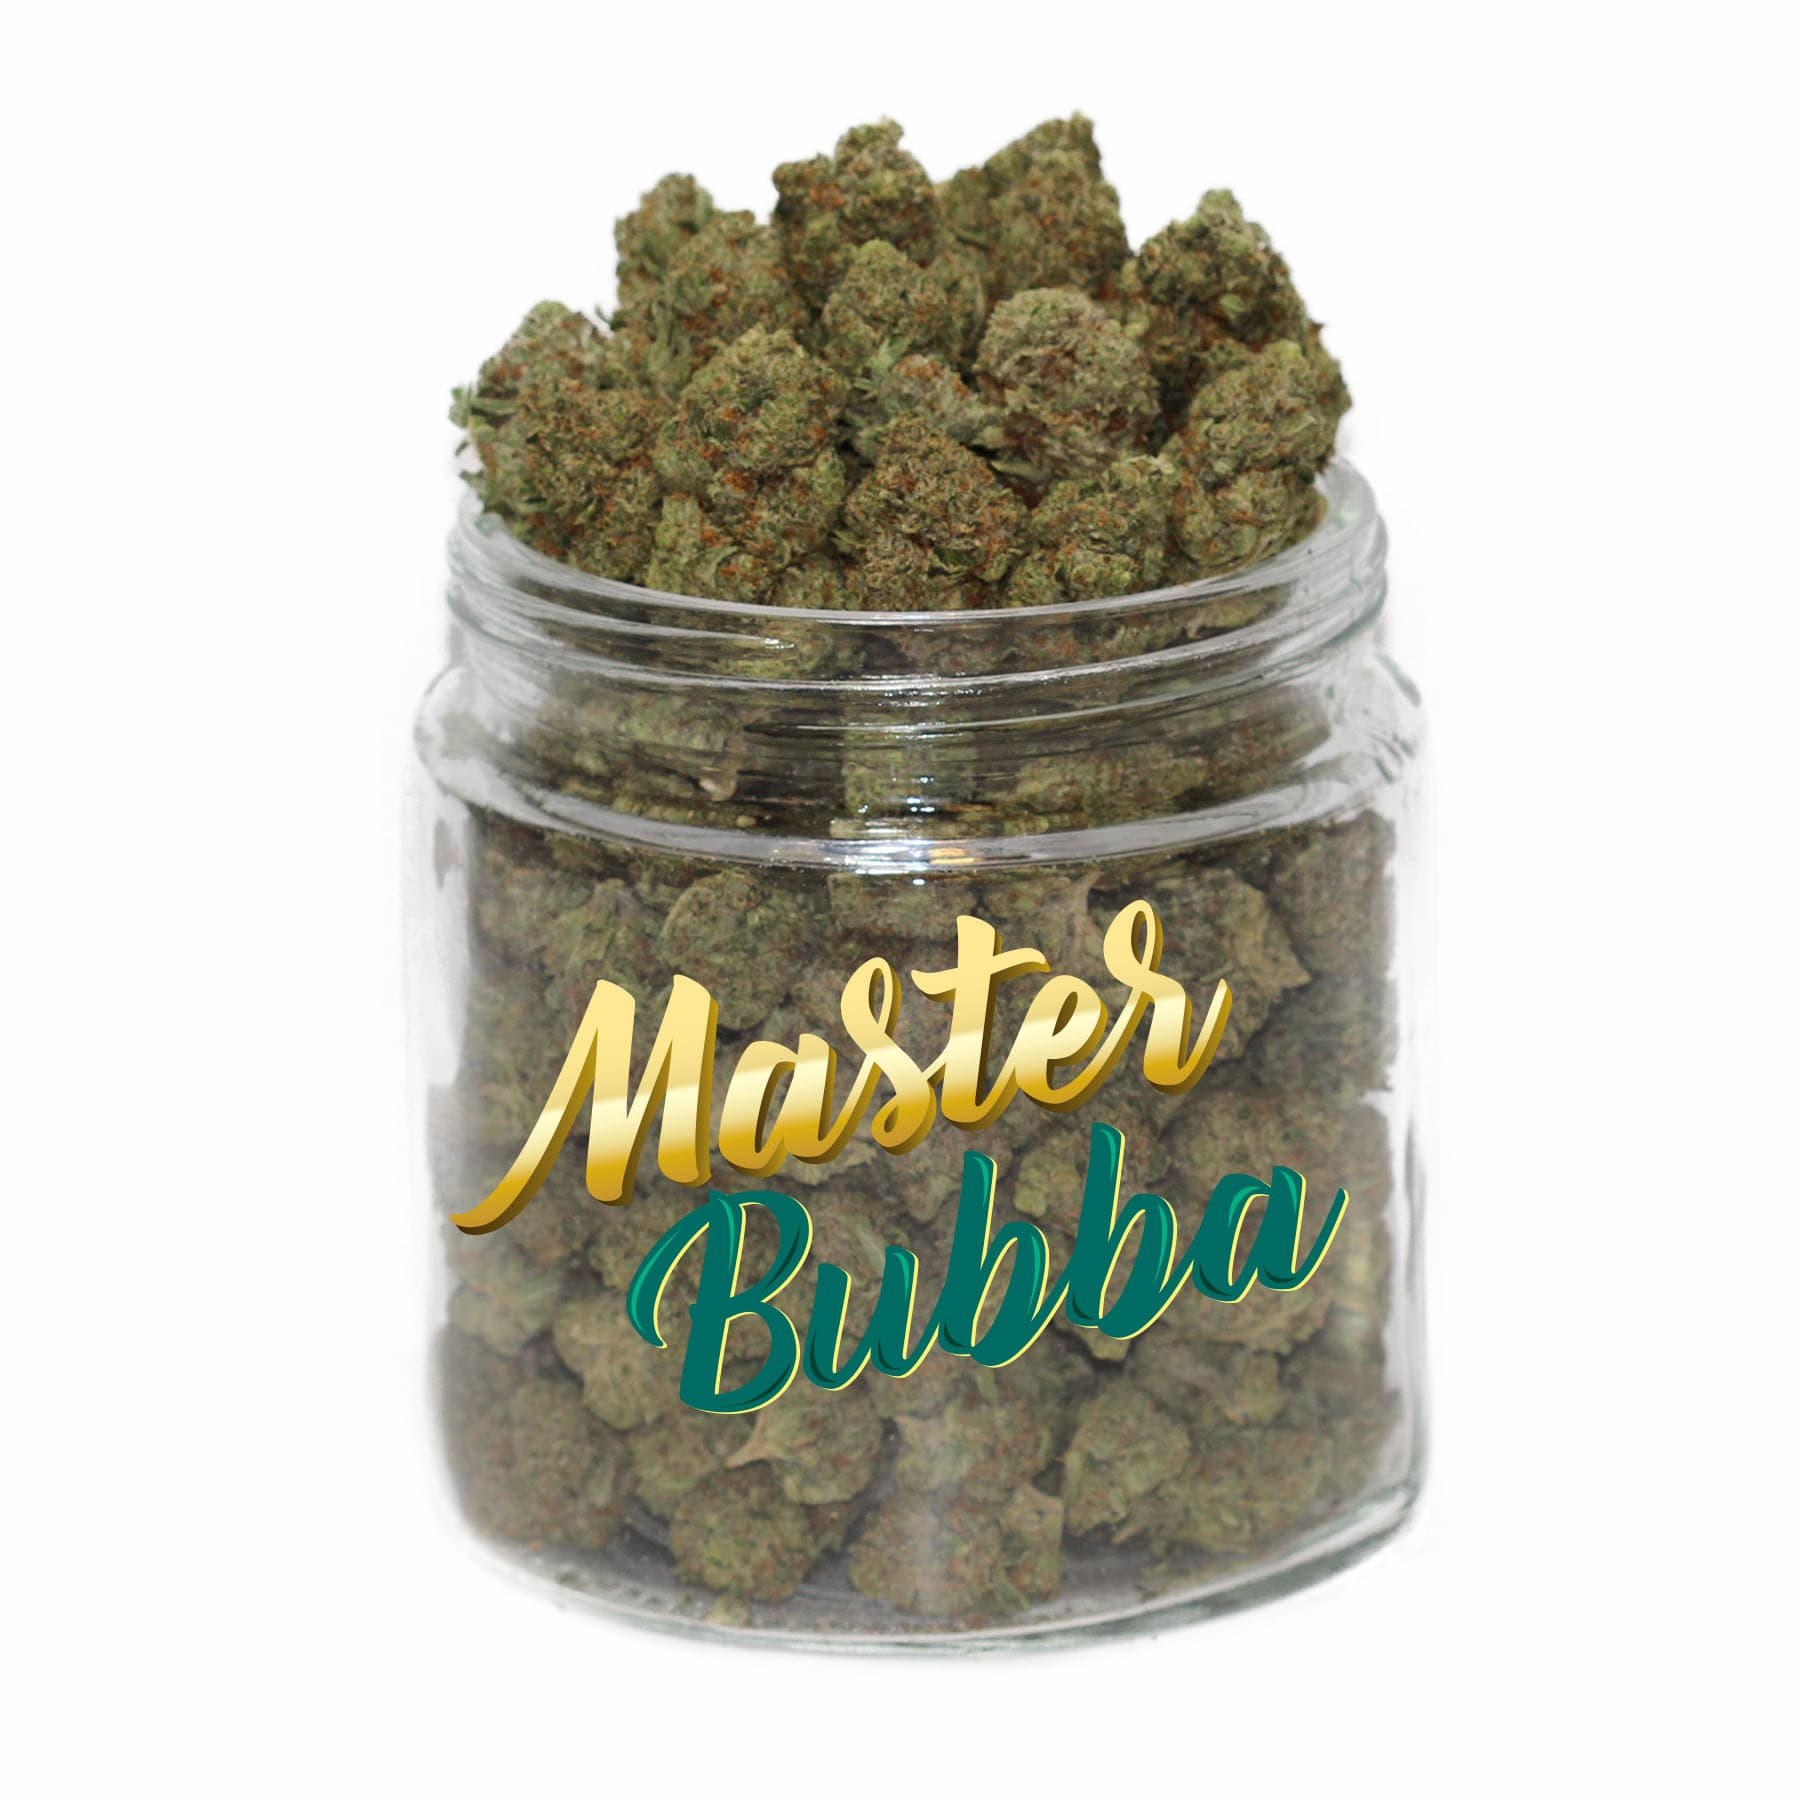 Master Bubba by Get Kush - Image © 2018 Get Kush. All Rights Reserved.